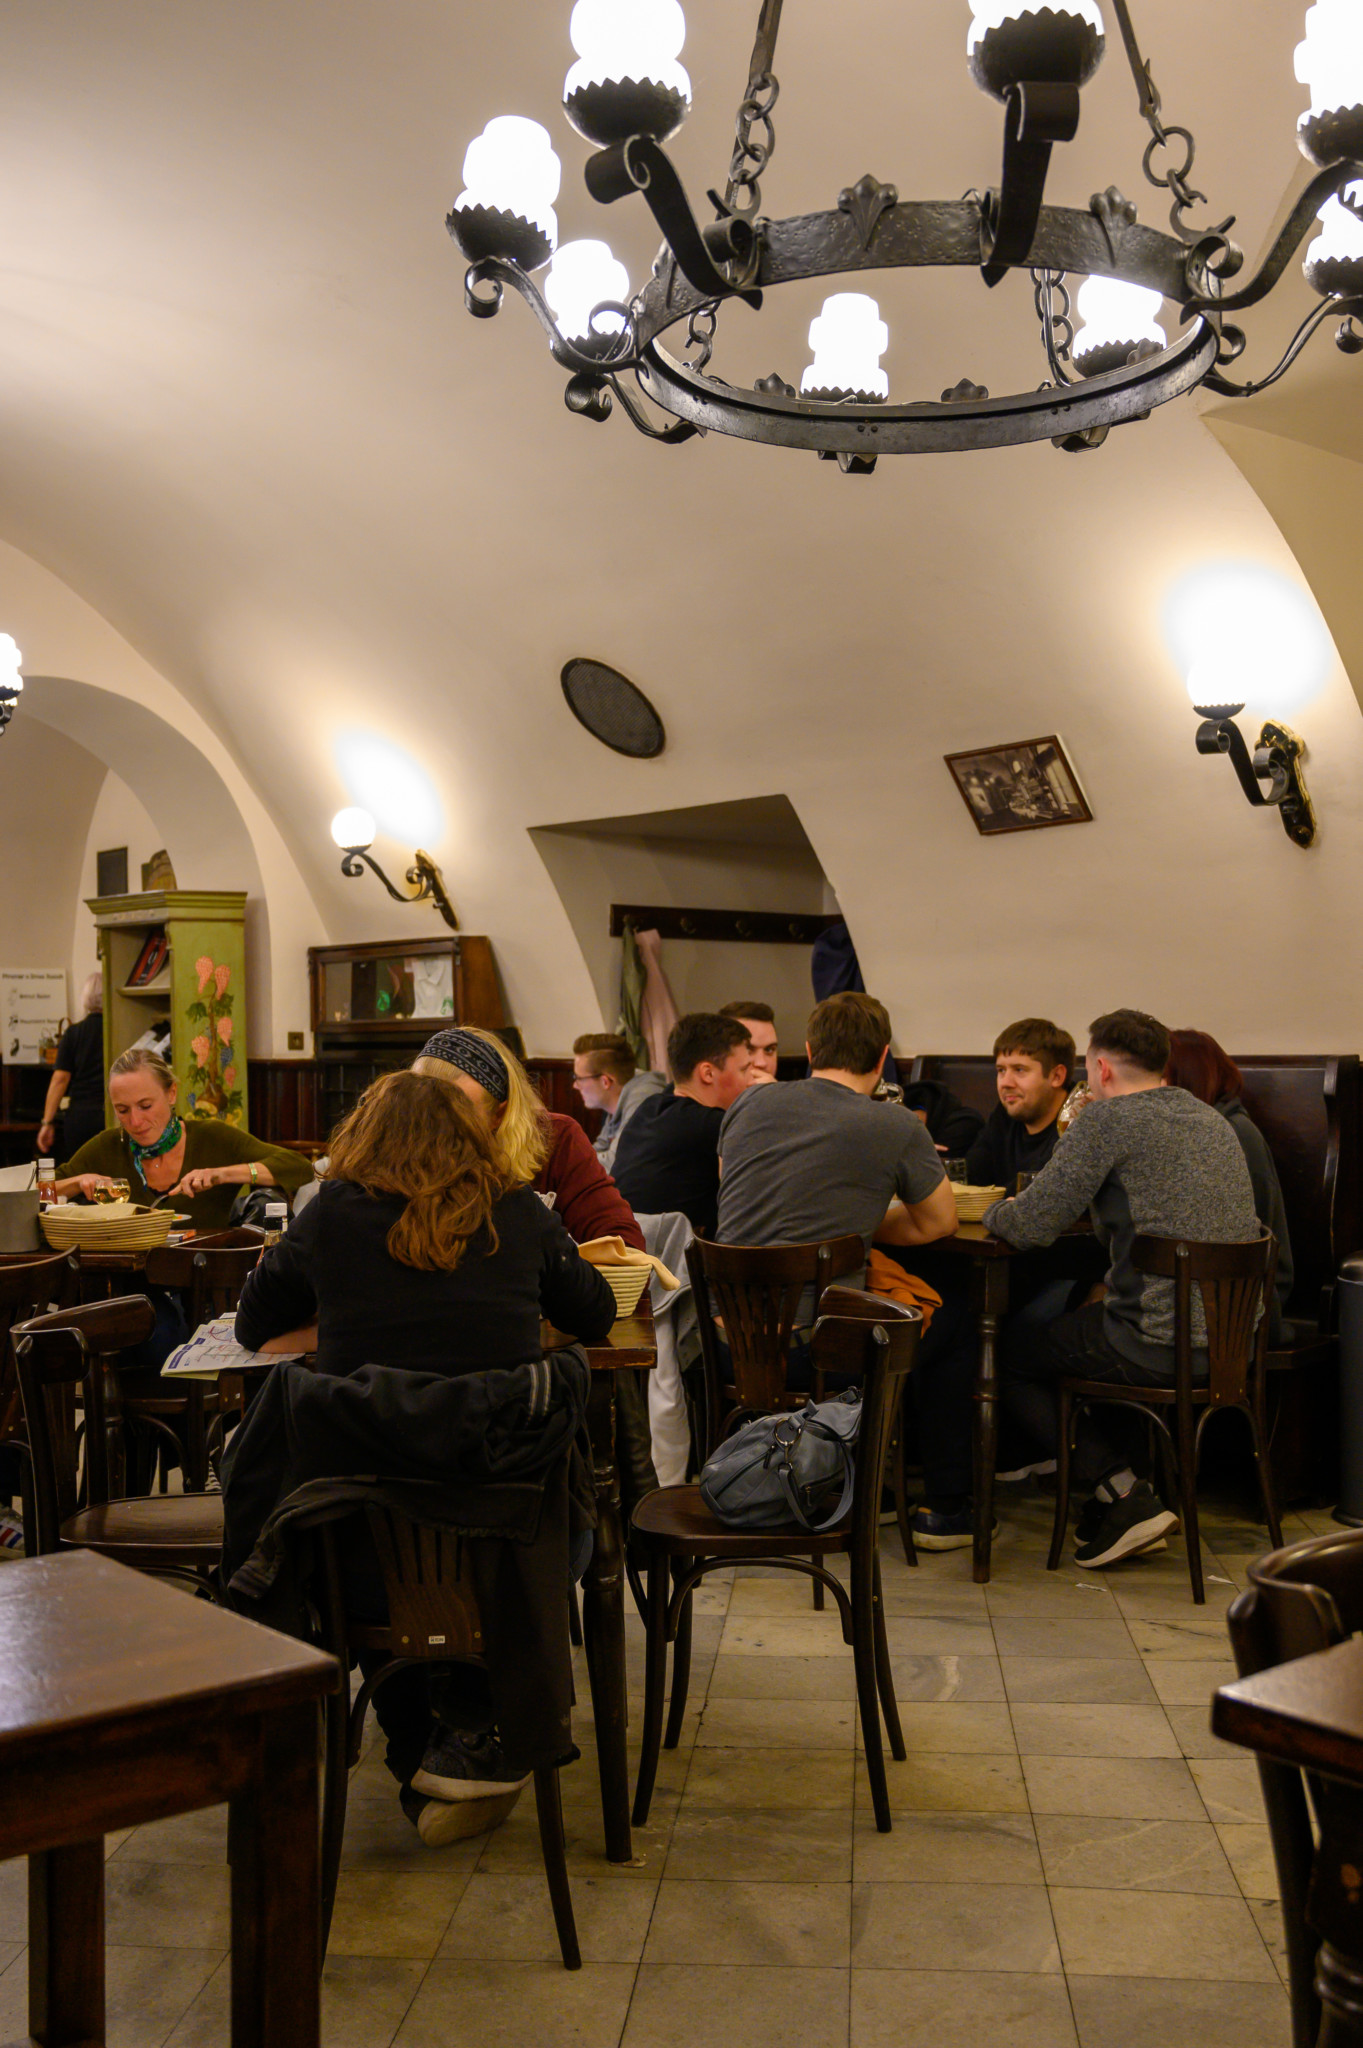 Uriges Restaurant in Prag